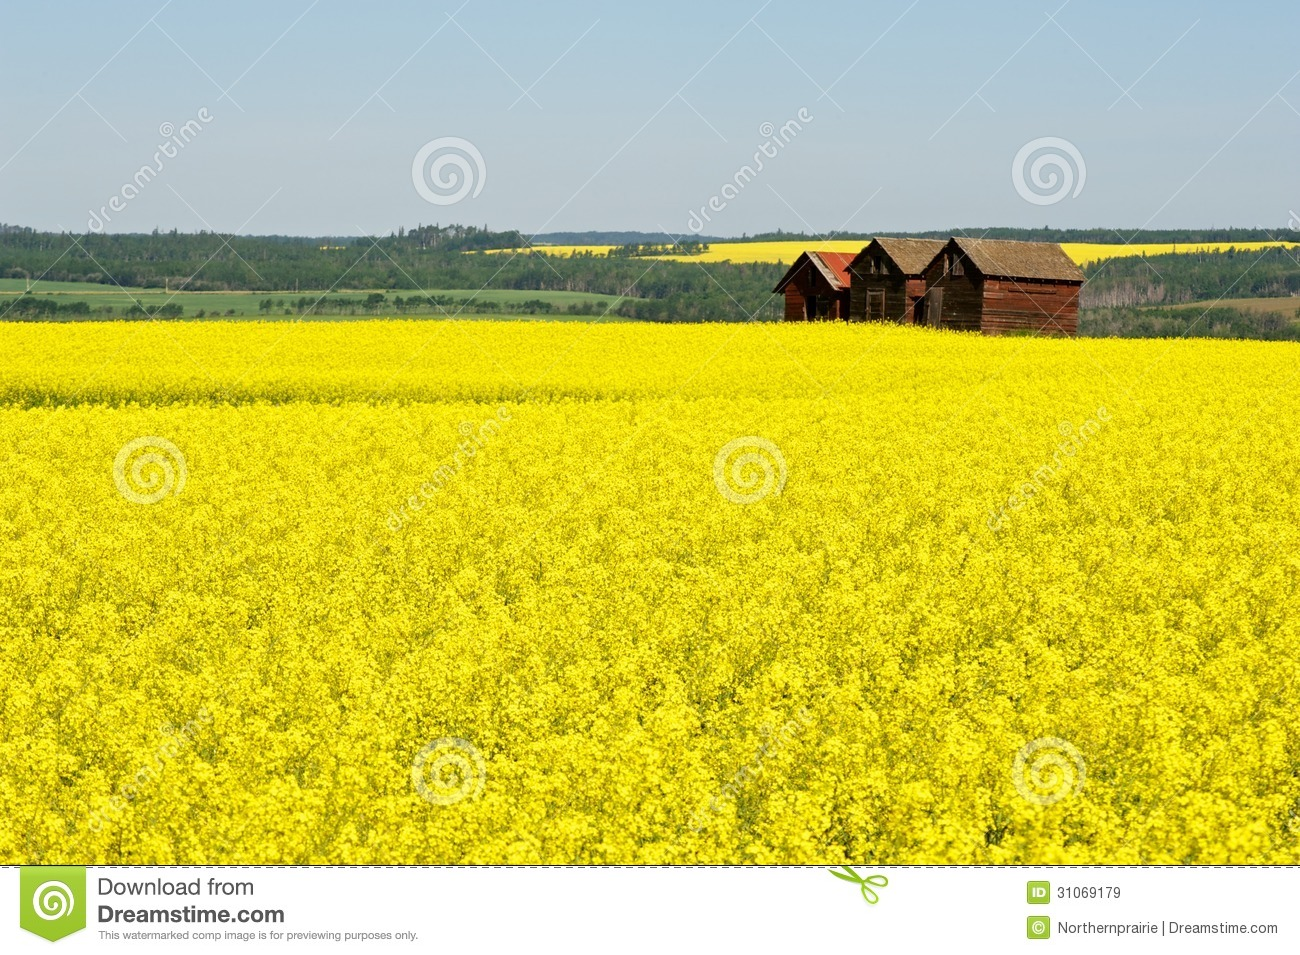 Abandoned granaries in canola field